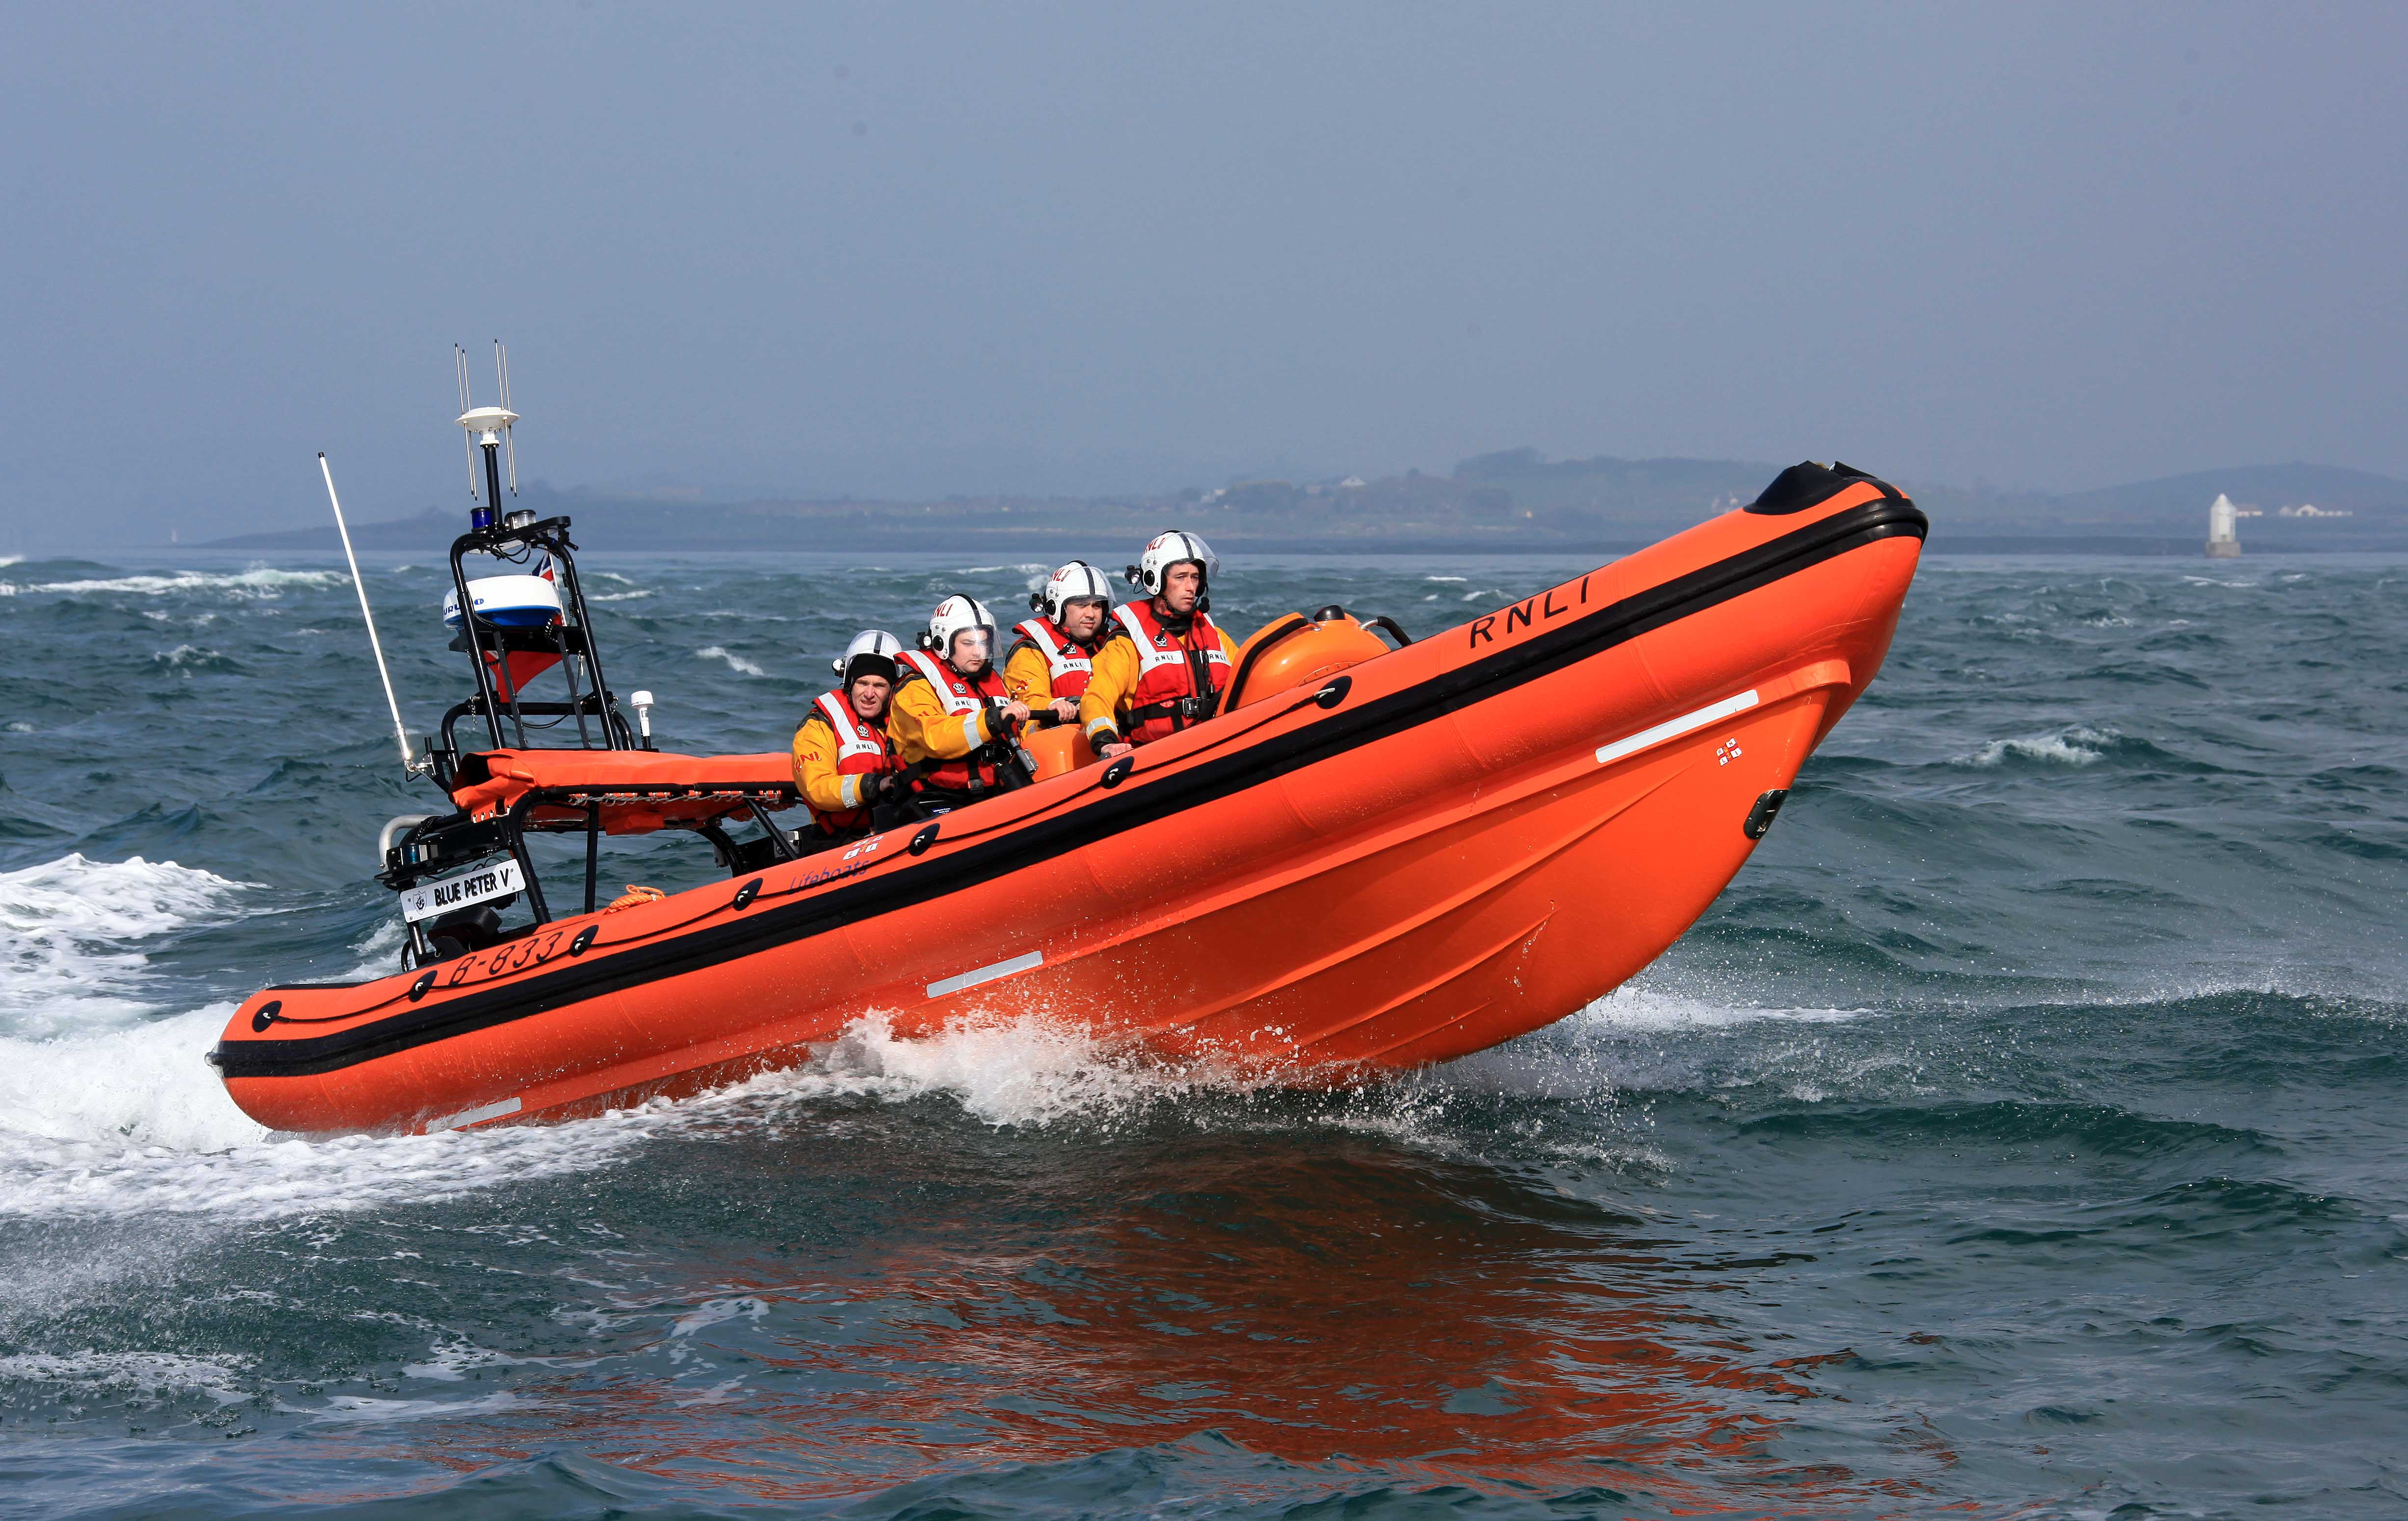 File photo of Portaferry RNLI lifeboat